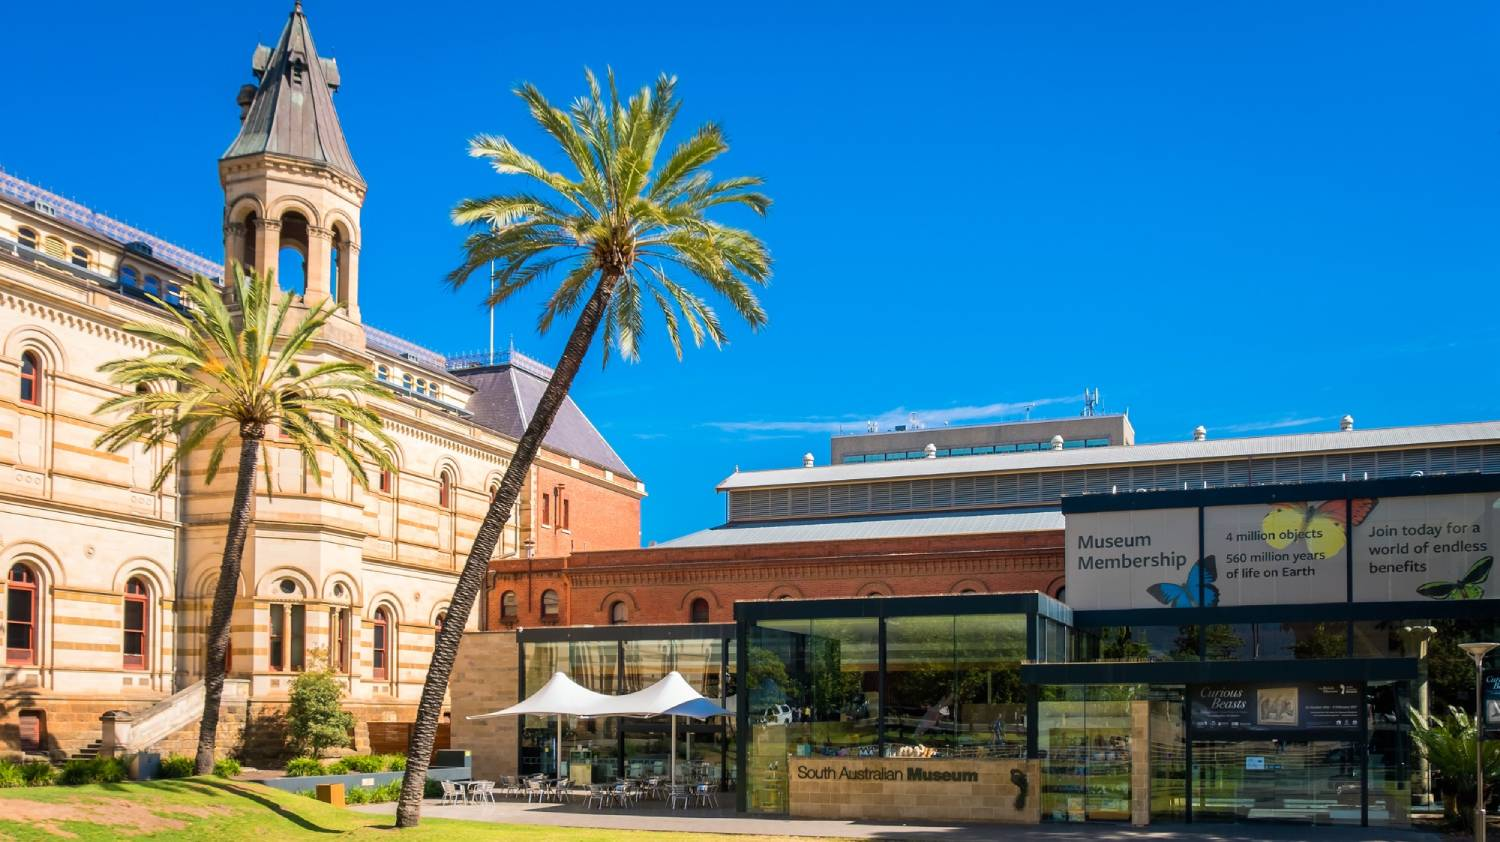 South Australian Museum - Things To Do In Adelaide